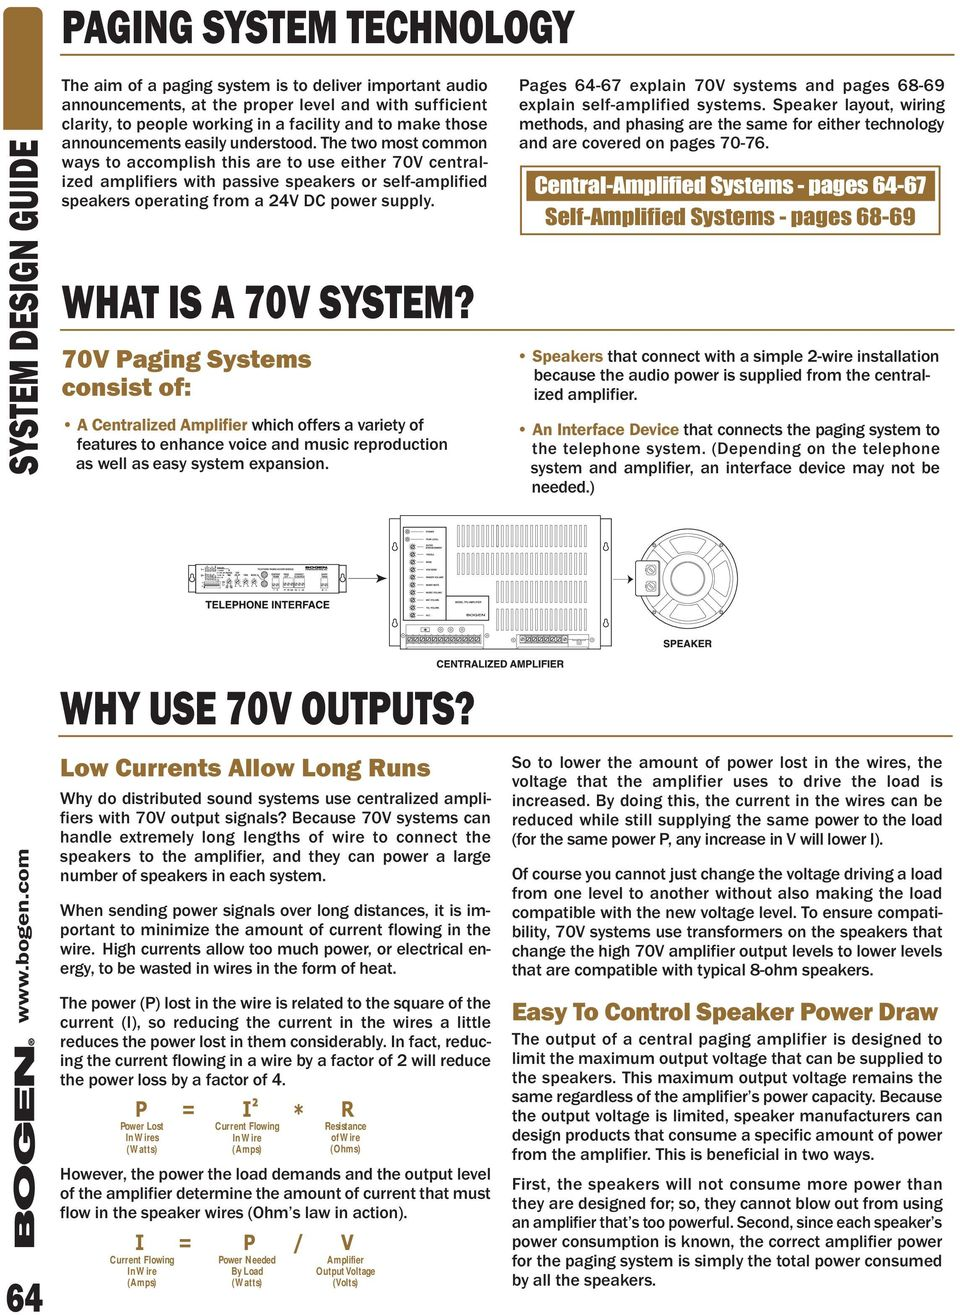 System Design Guide Pdf Bogen Intercom Systems Wiring Diagram The Two Most Common Ways To Accomplish This Are Use Either 70v Centralized Amplifiers With